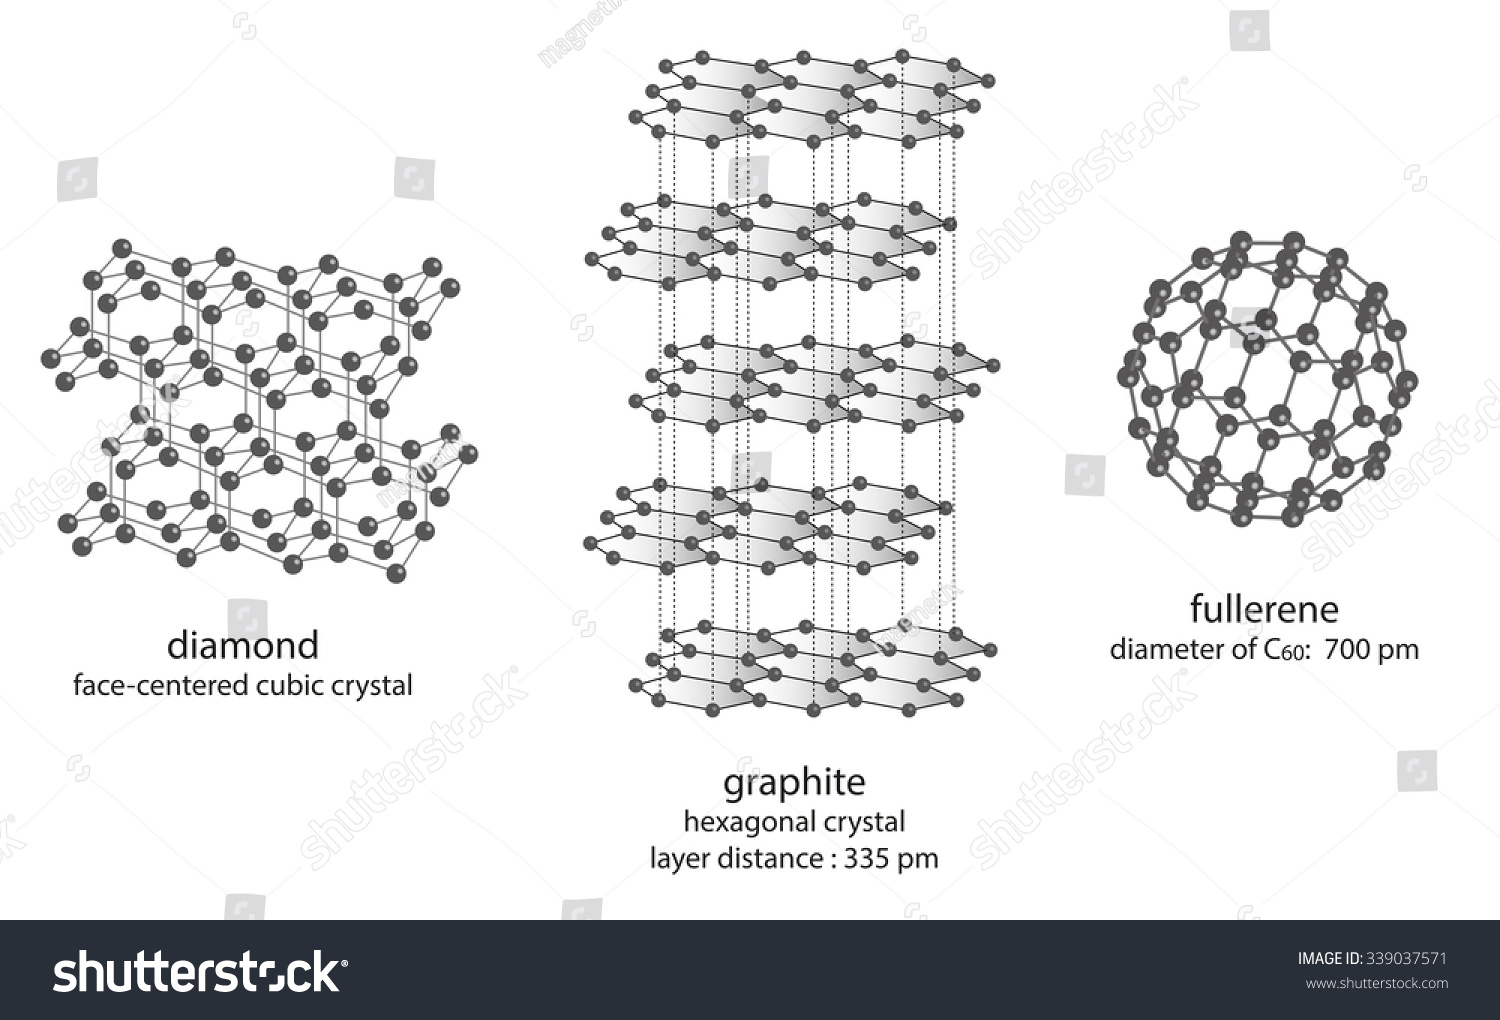 diamond and graphite All in all, graphite is shown as a softer giant structure than diamond, this is because of the one delocalised electron that graphite has, that allows it.